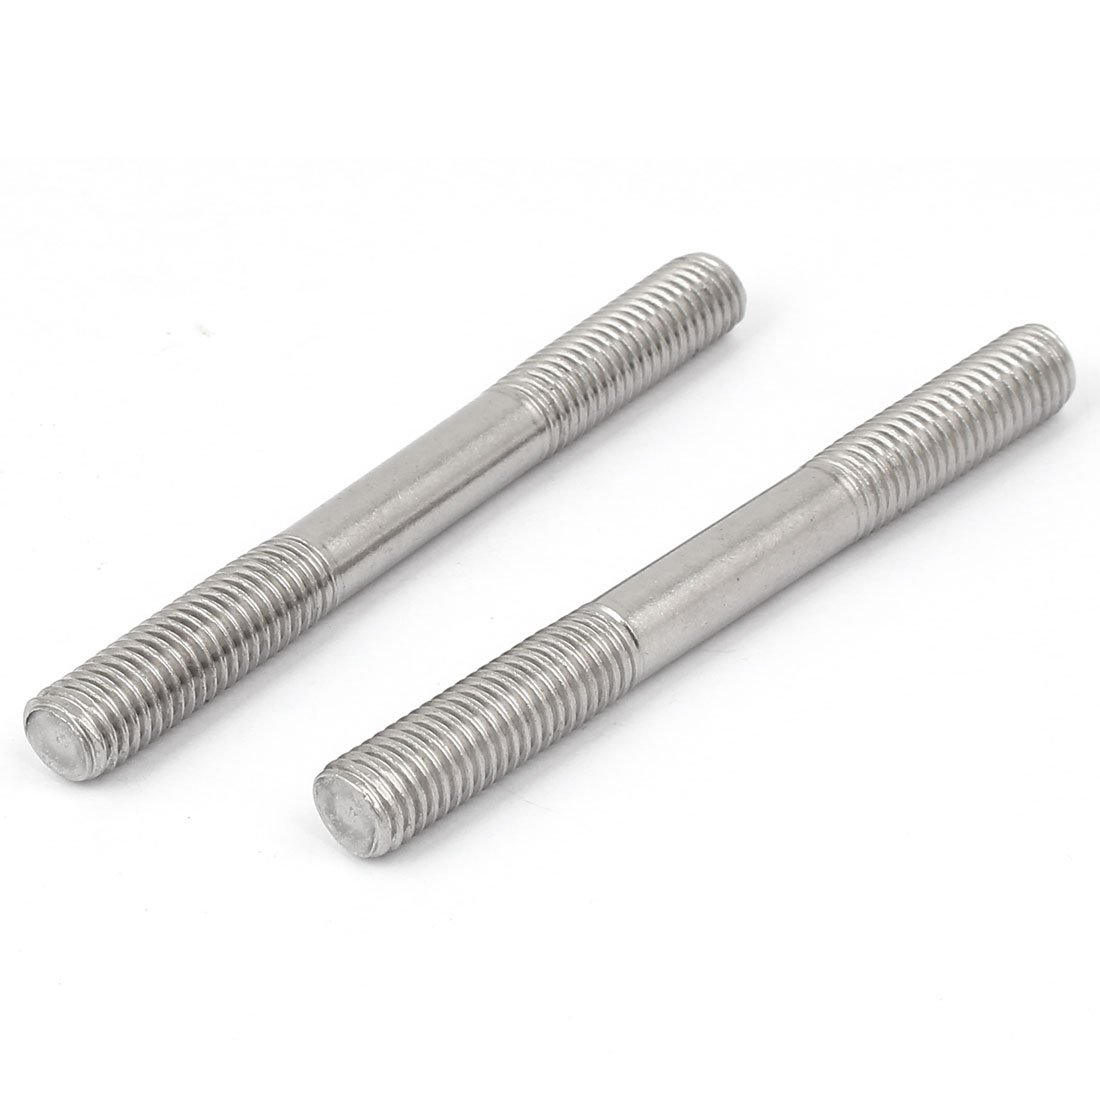 uxcell M10x100mm Double End Thread 304 Stainless Steel Tight Adjustable Push Rod Stud 10pcs by uxcell (Image #3)